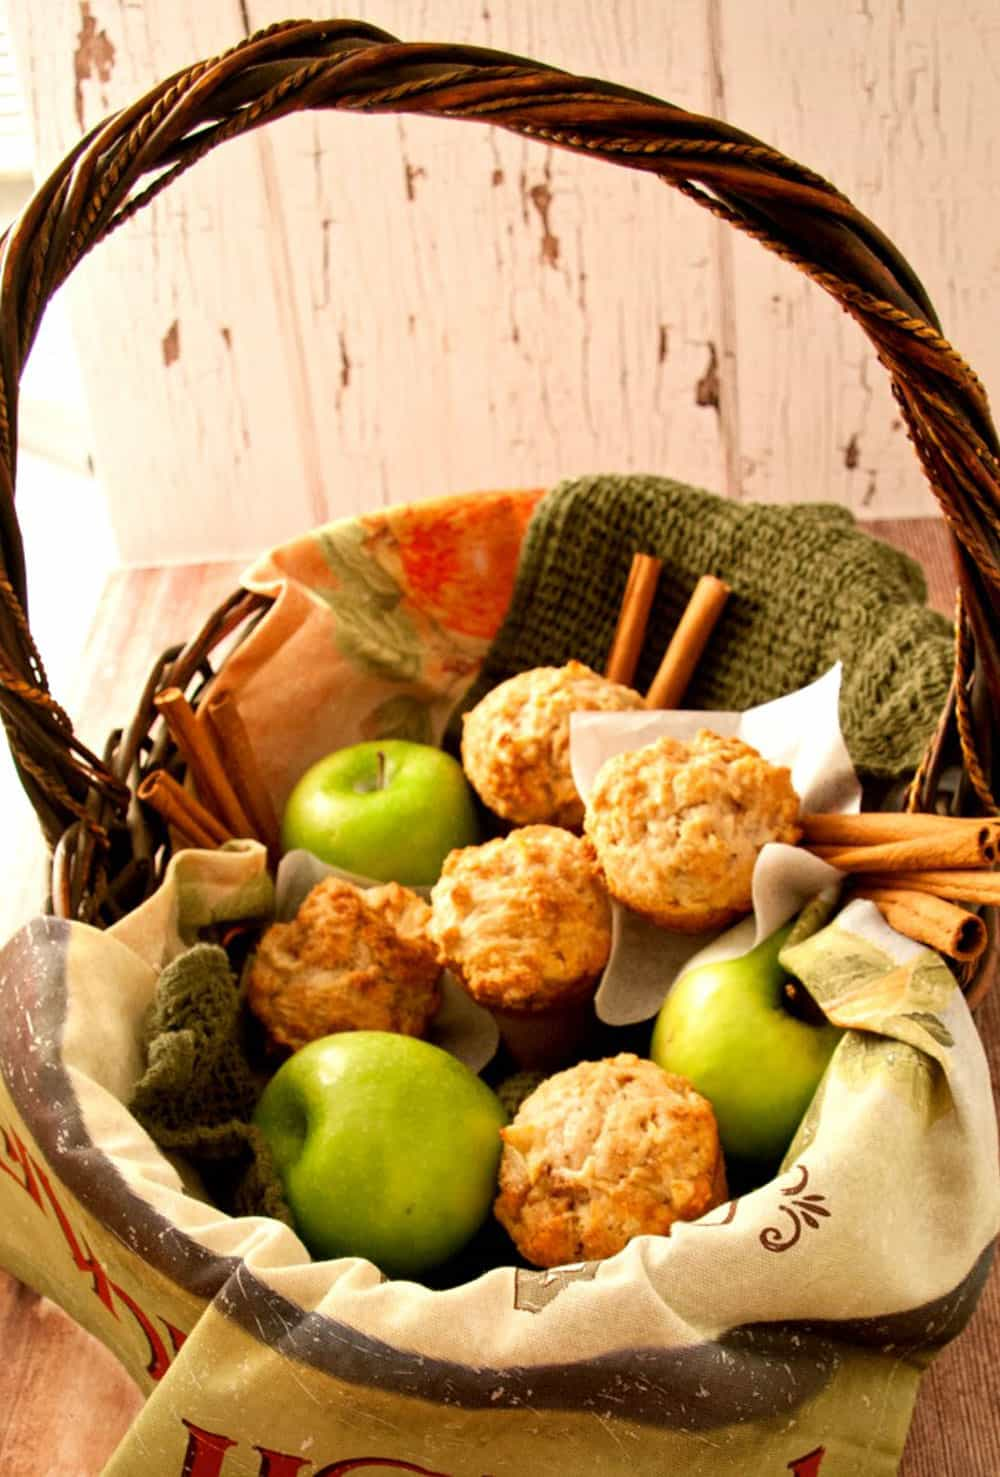 Apple Pie Muffin Recipe | A Great Breakfast Choice!